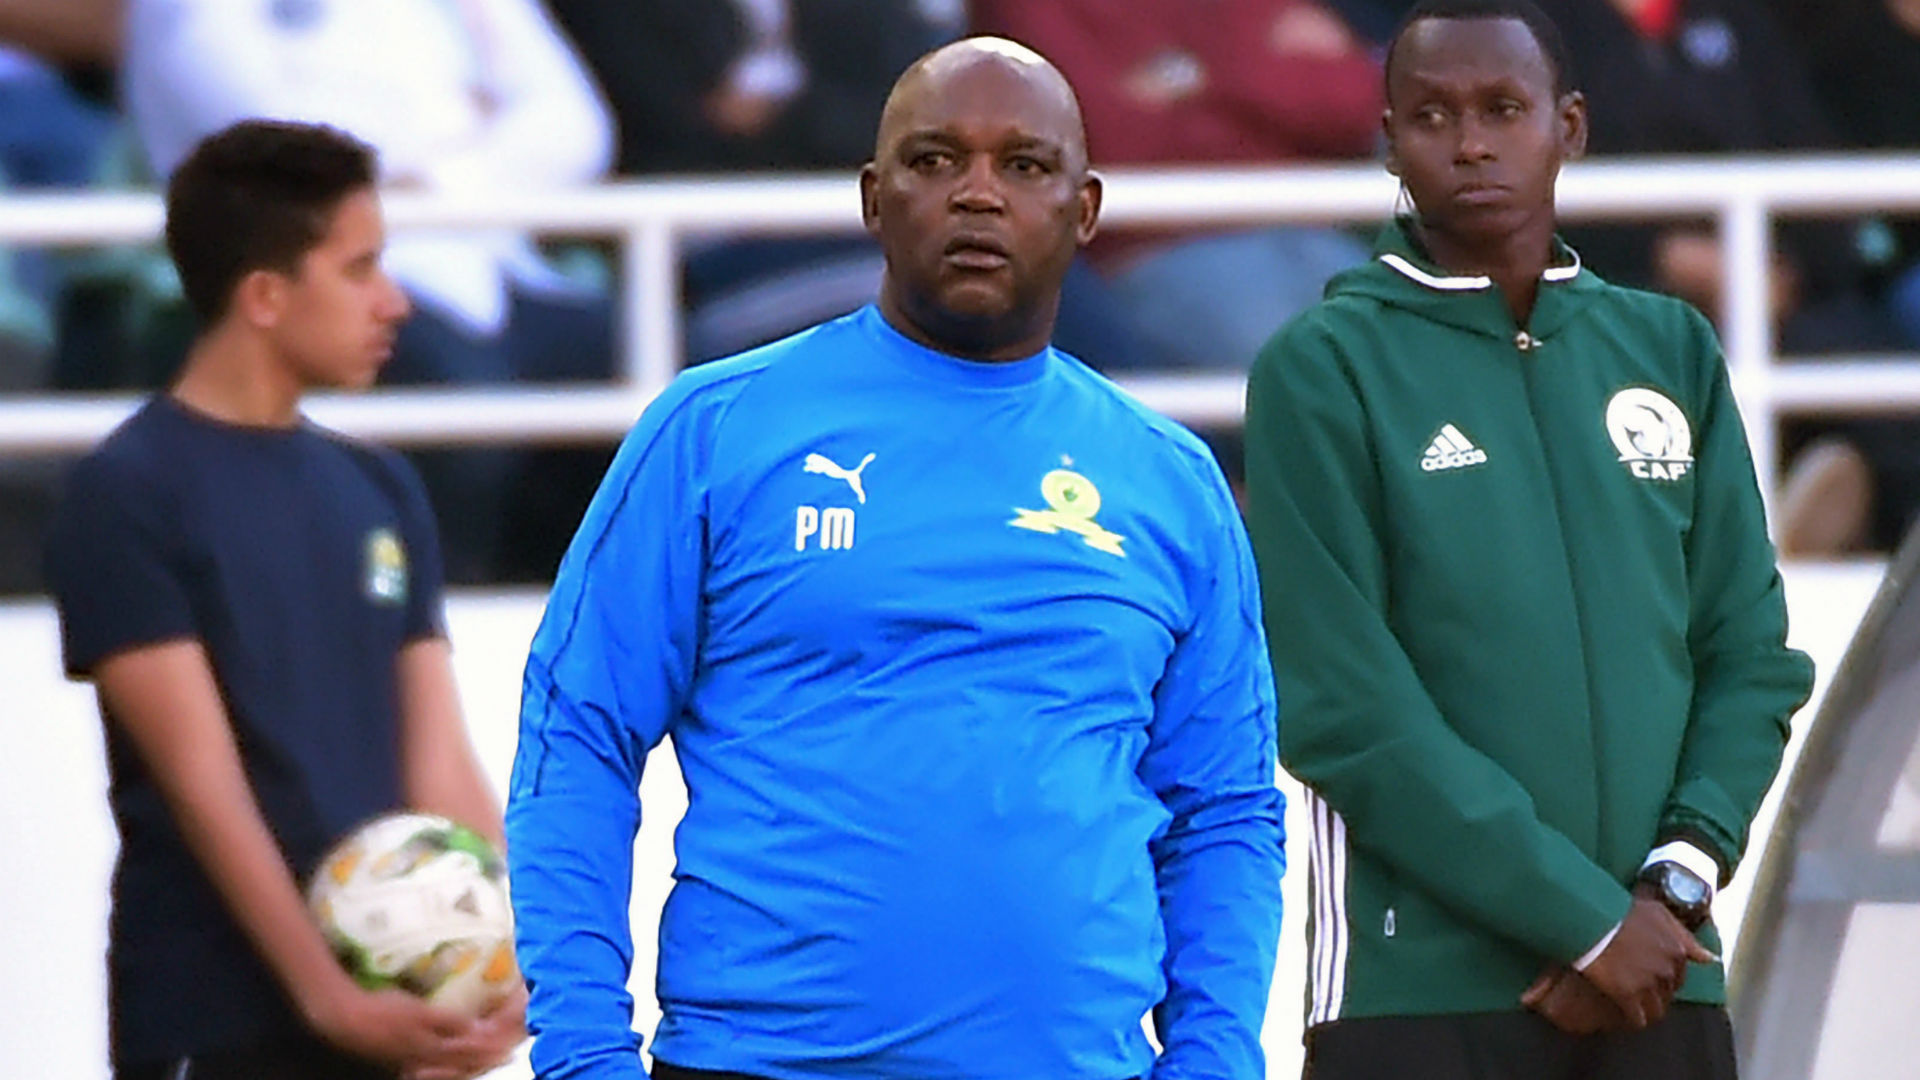 mamelodi sundowns coach pitso mosimane march 2019 1b2e3iu04u24y13m3bx01jshze - Mosimane: I never got distracted by 'offers all the time' to leave Mamelodi Sundowns